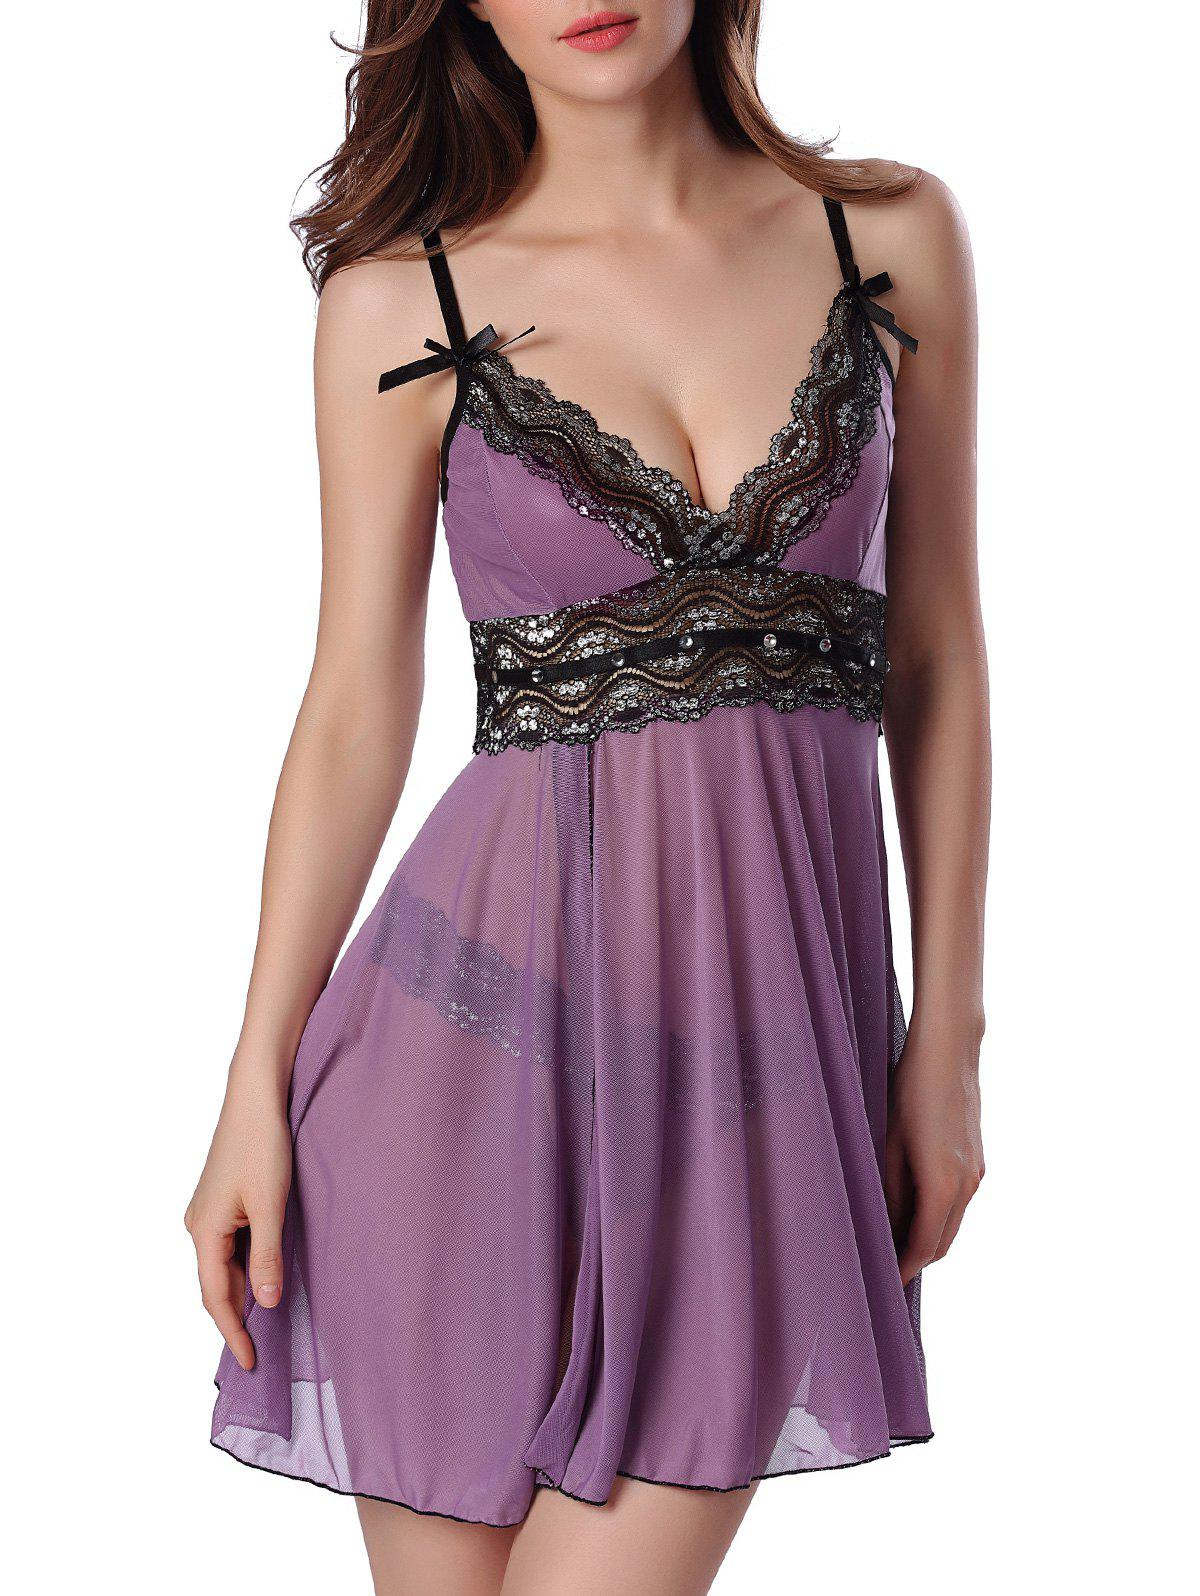 Sequined Spliced Slit Plunge Babydoll With Briefs - PURPLE S